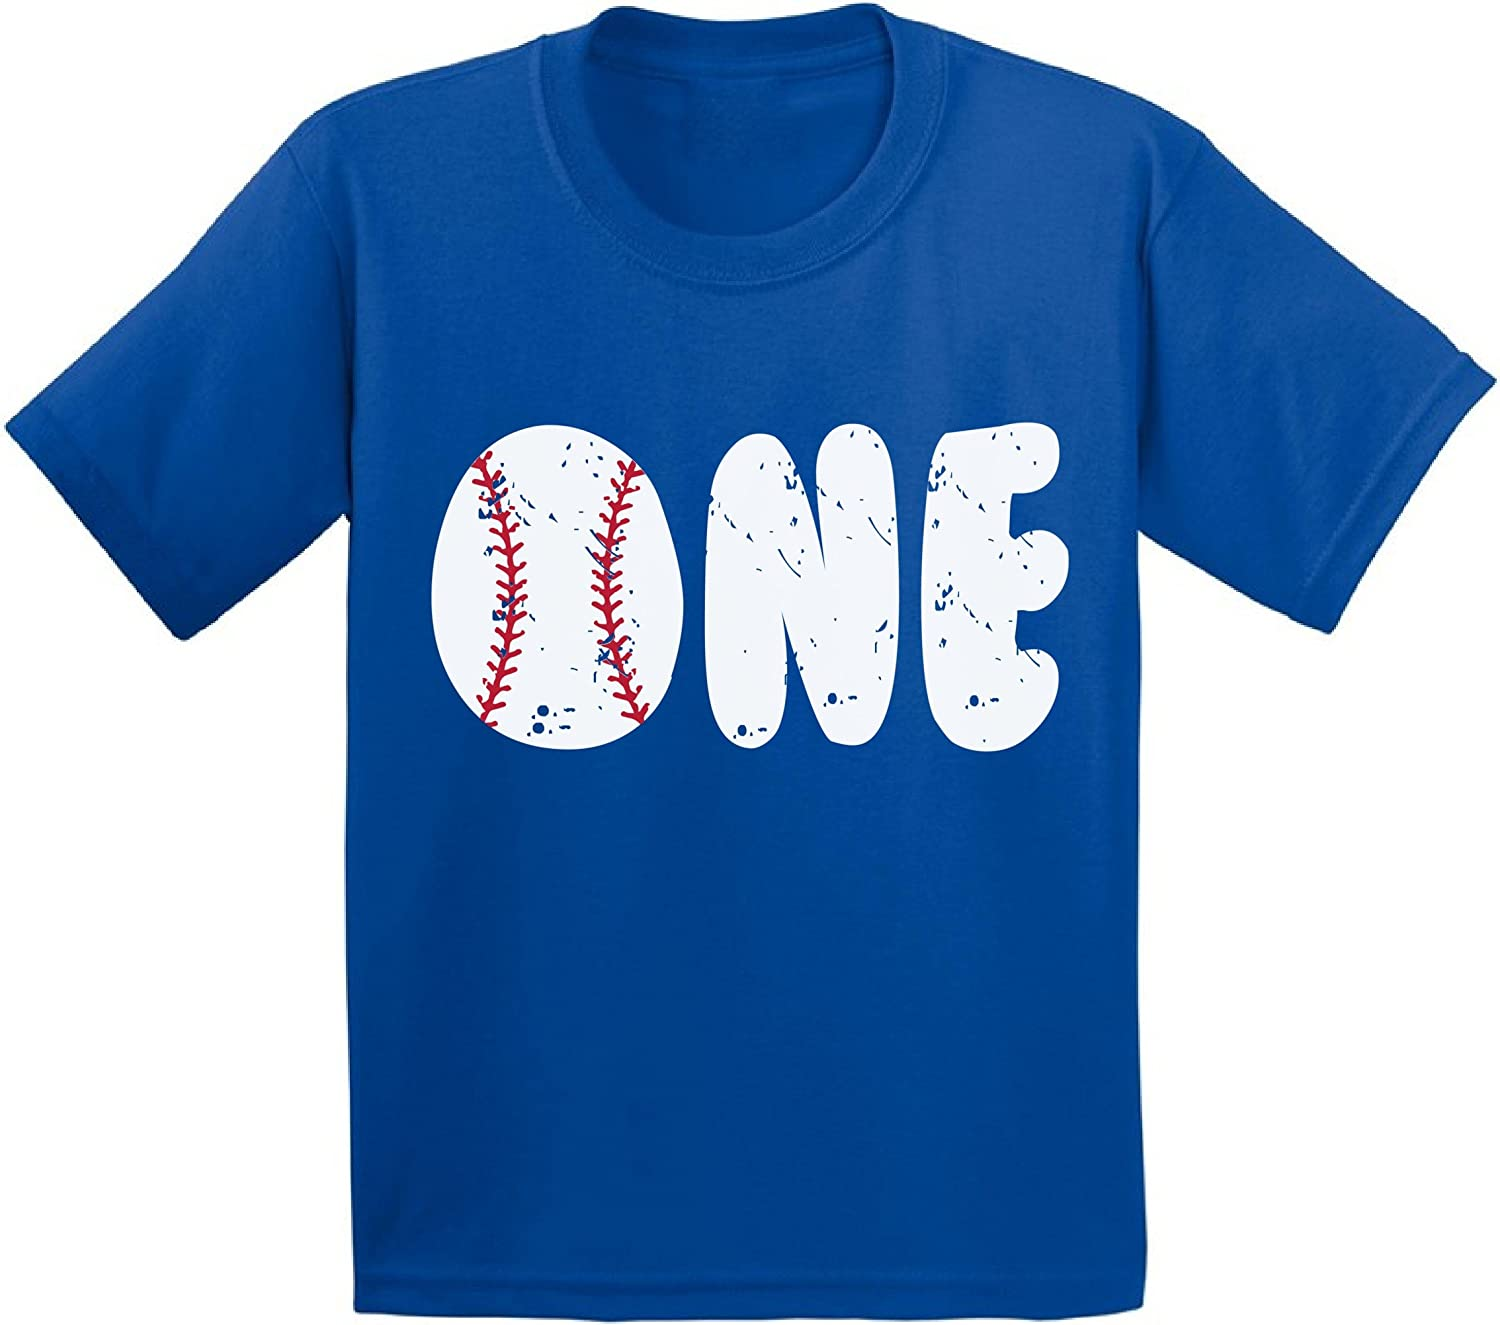 Awkward Styles Baseball Birthday Toddler T Shirts Infant T Shirts First Birthday Party Baby